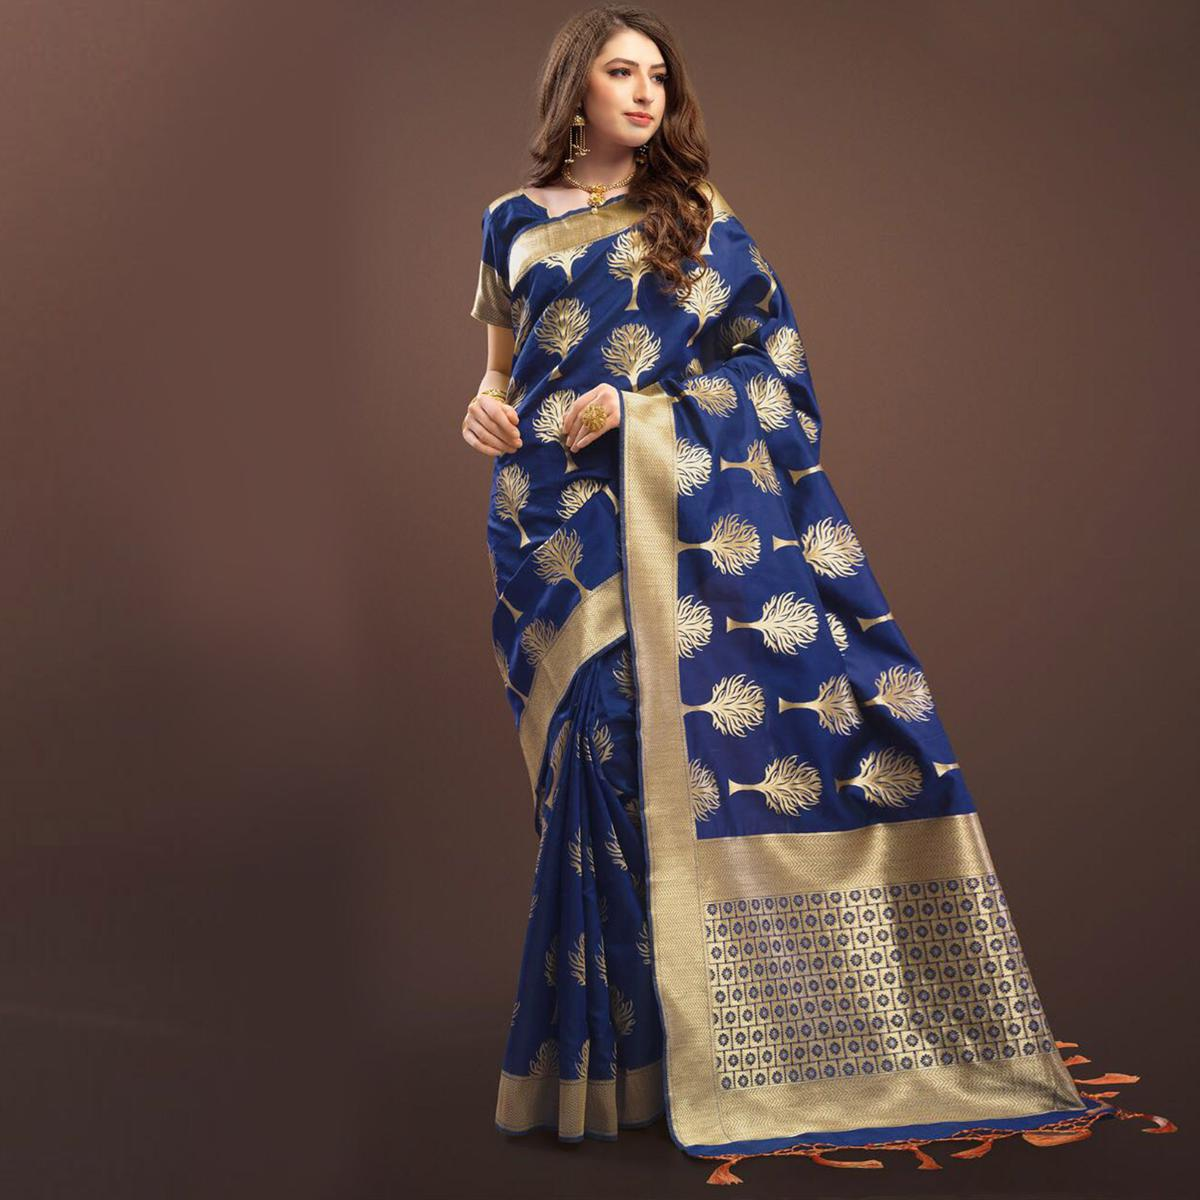 d6548a2526 Buy Perfect Navy Blue Colored Designer Festive Wear Woven Banarasi Silk  Saree Online India, Best Prices, Reviews - Peachmode